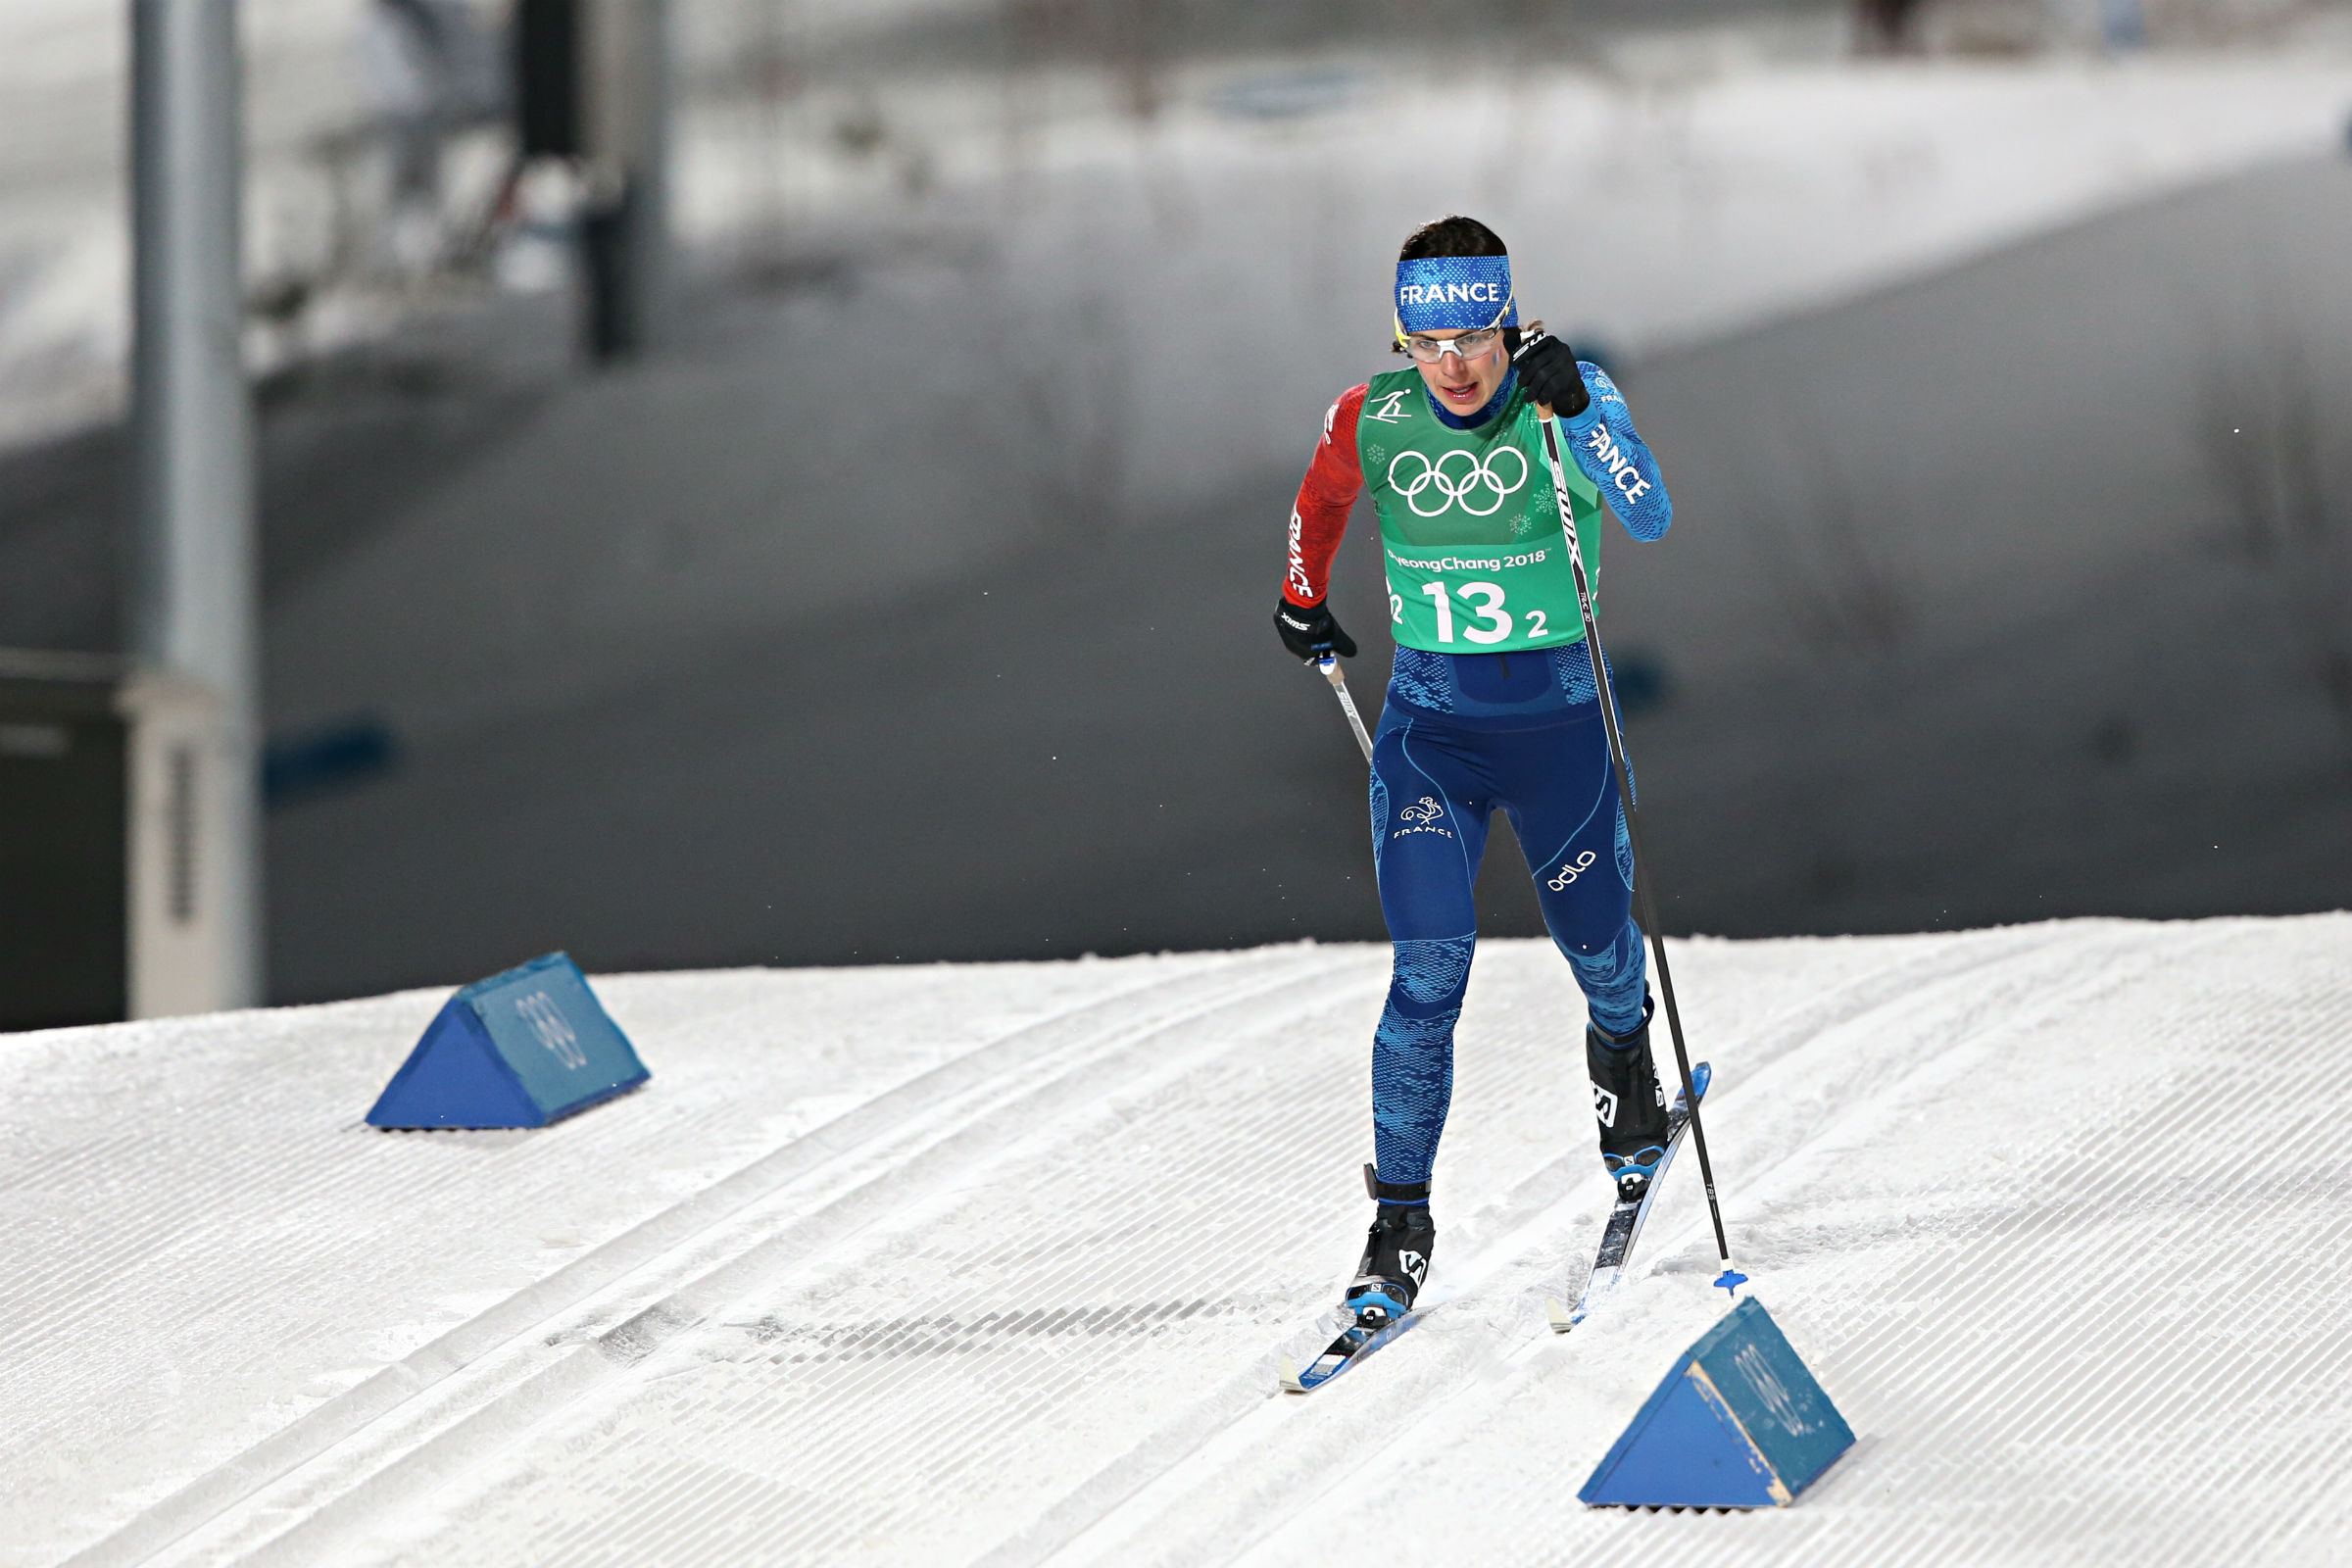 Cross-Country Skiing - Ladies' 4 x 5km Relay